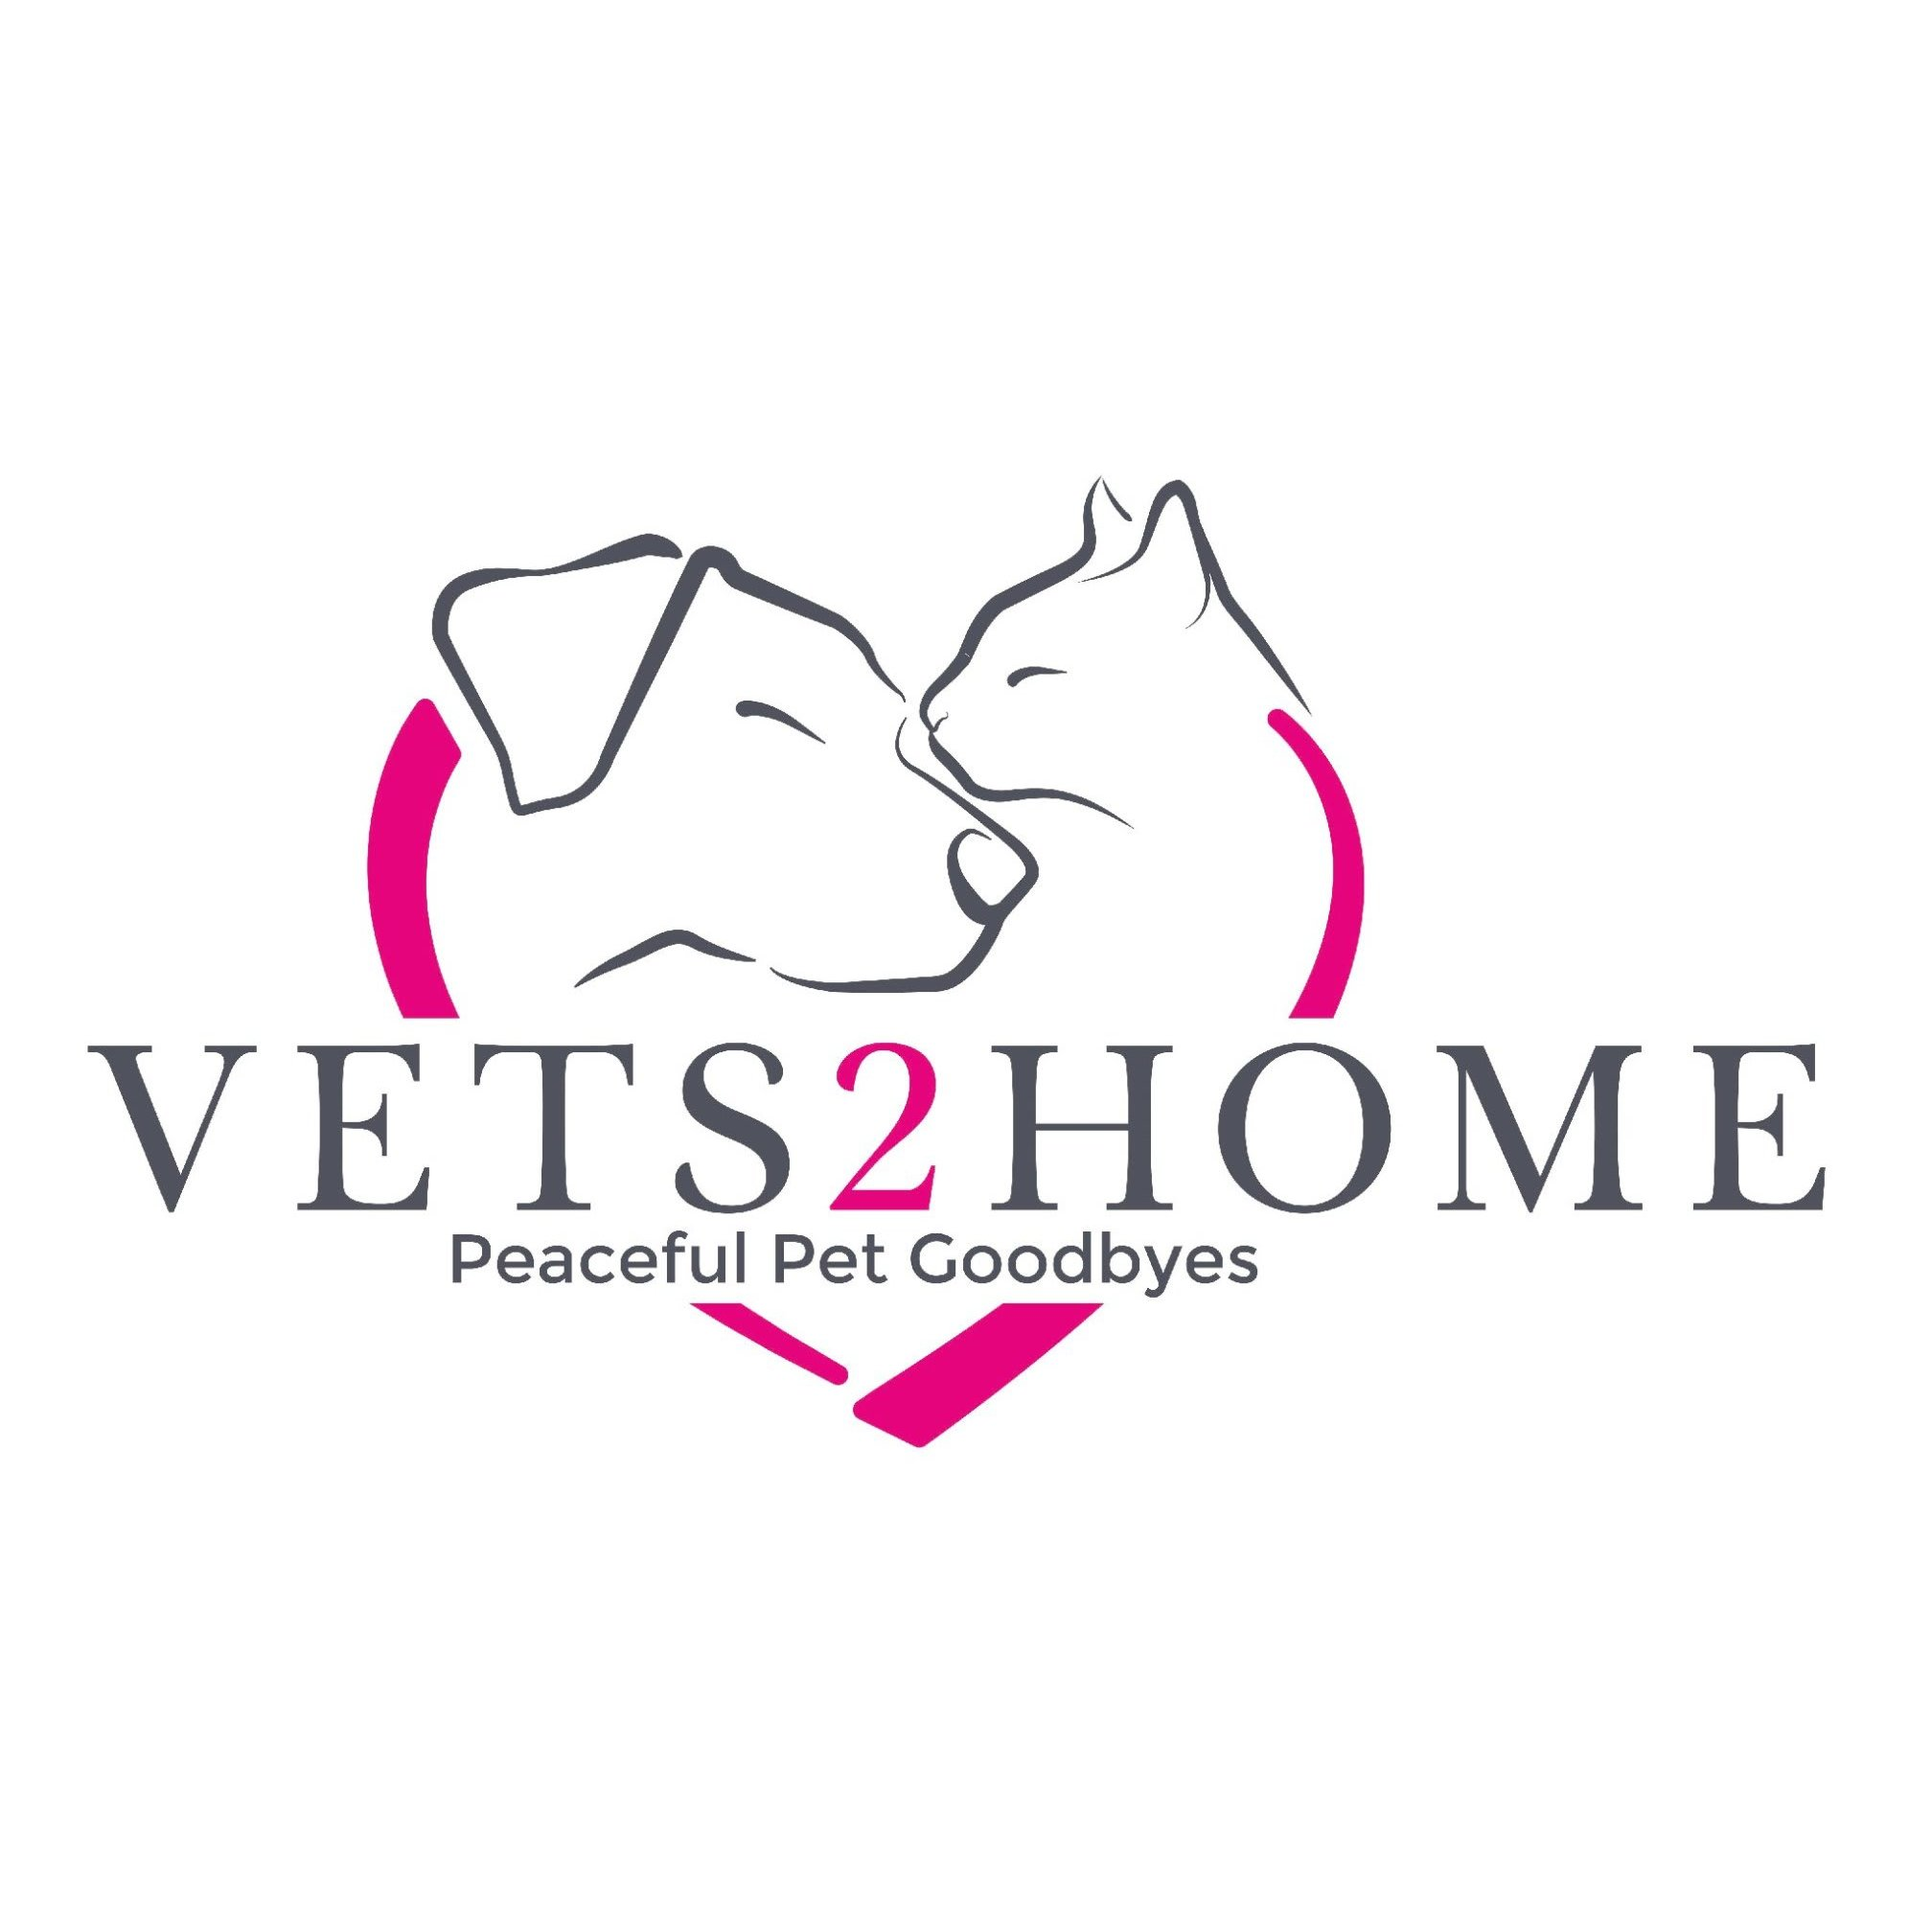 Vets2Home Peaceful Pet Goodbyes - Peacehaven, East Sussex  BN10 8JJ - 07962 423567 | ShowMeLocal.com